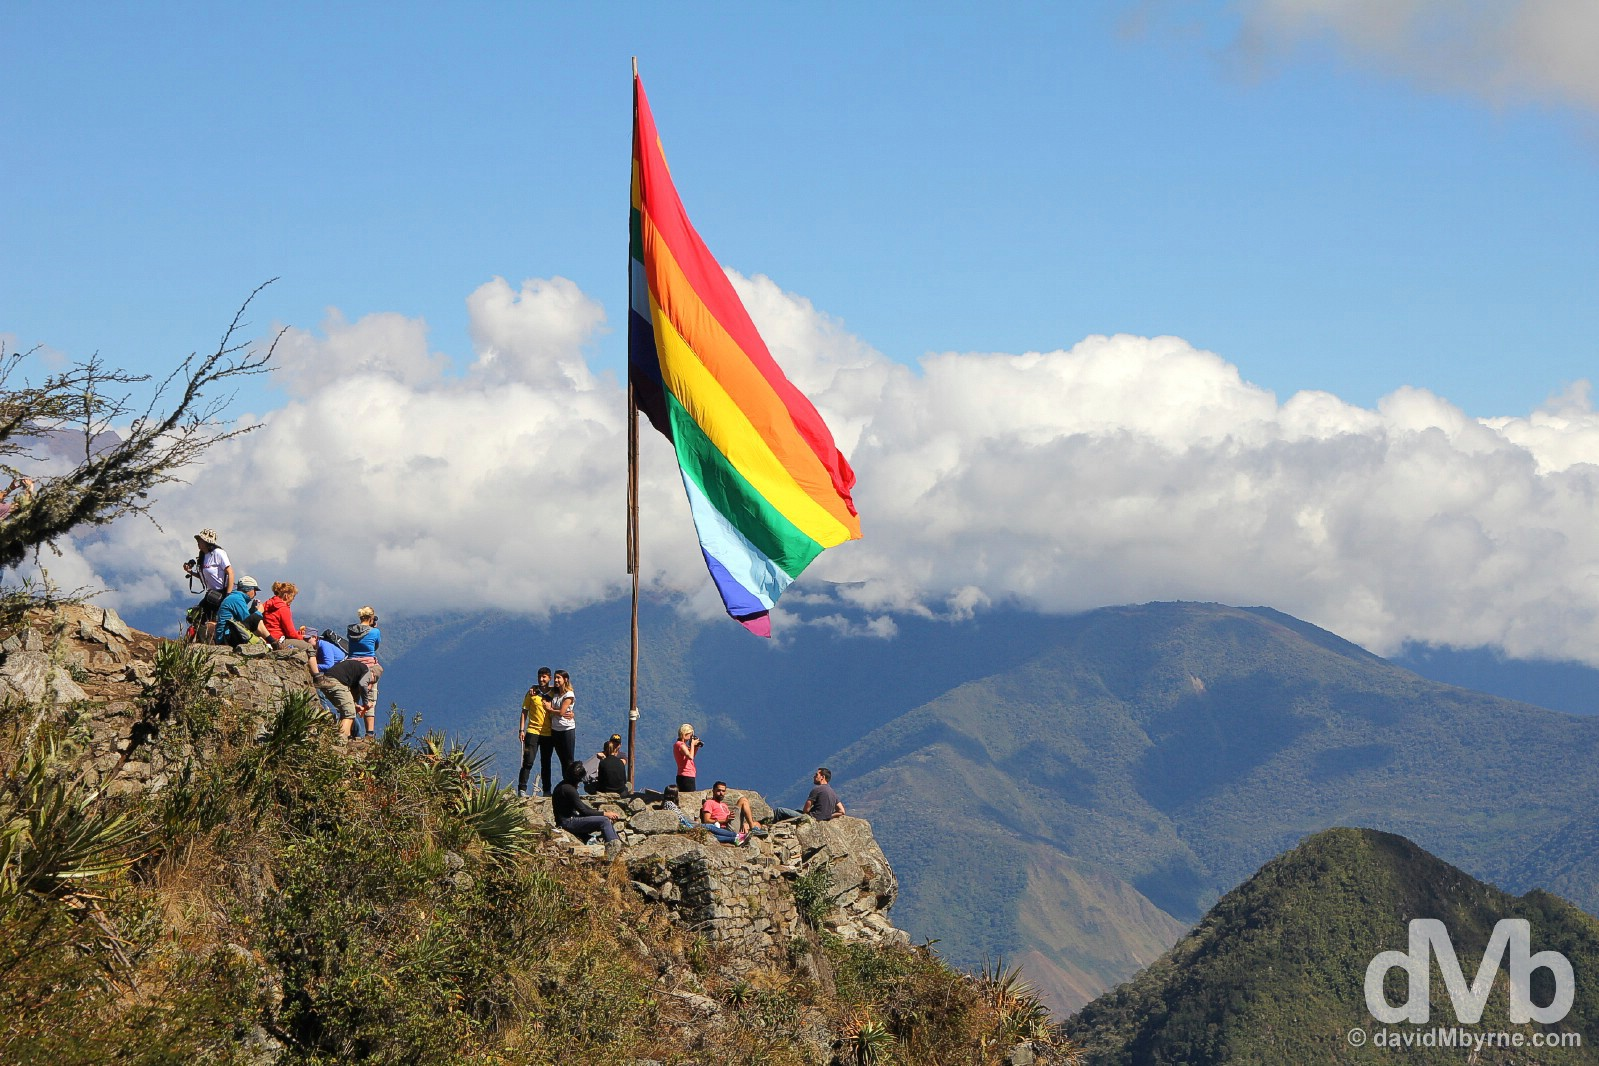 An Inca flag marks the 3061 metre summit of Montana Machupicchu in Machu Picchu, Peru. August 15, 2015.